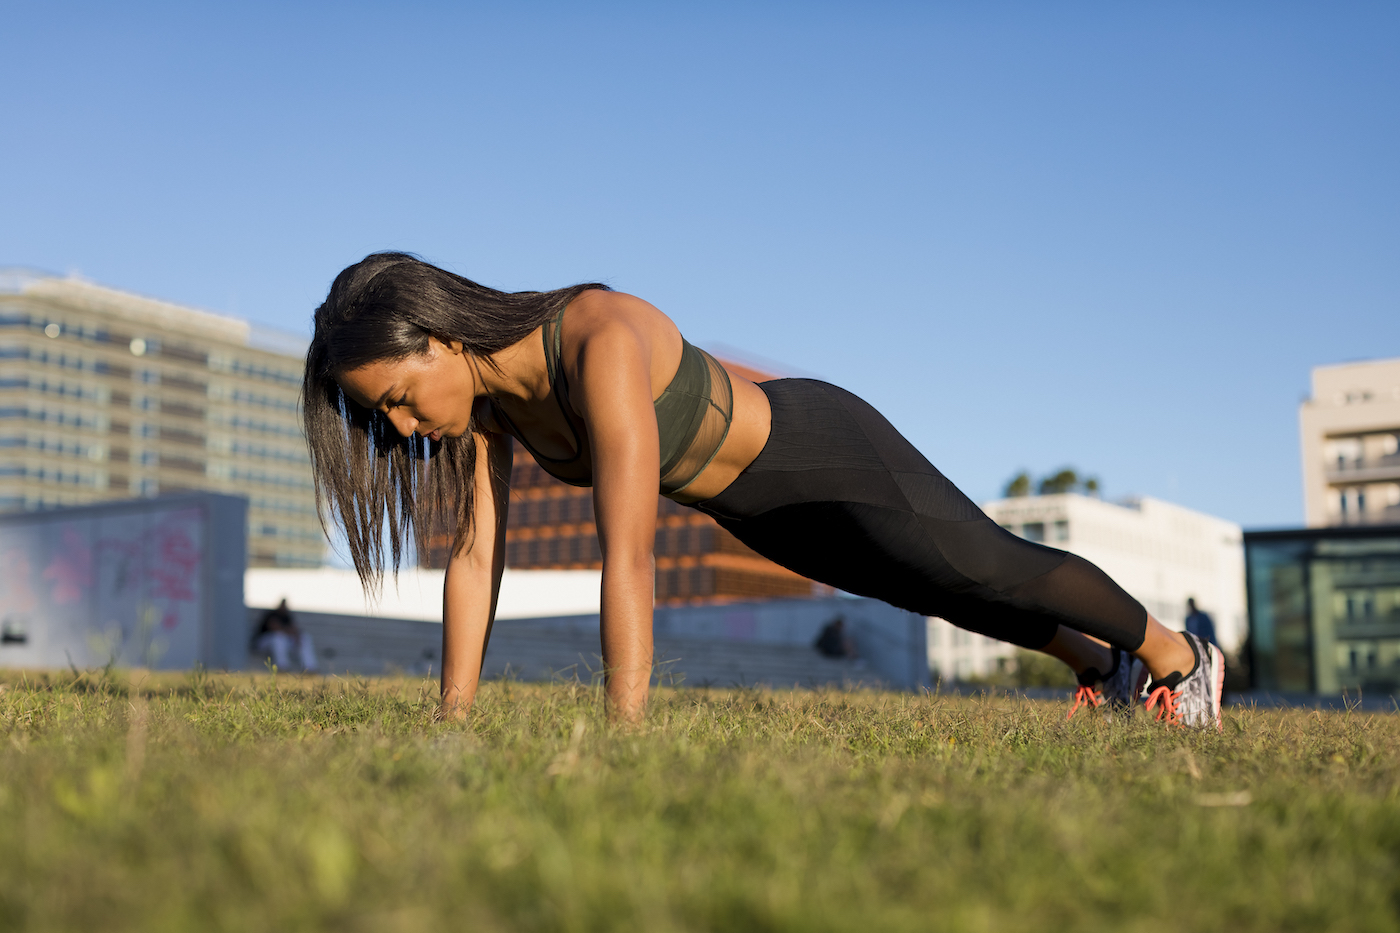 'Grasshopper Push-Ups' Target Hard-to-Hit Obliques (and TBH, Just About Every Other Muscle)